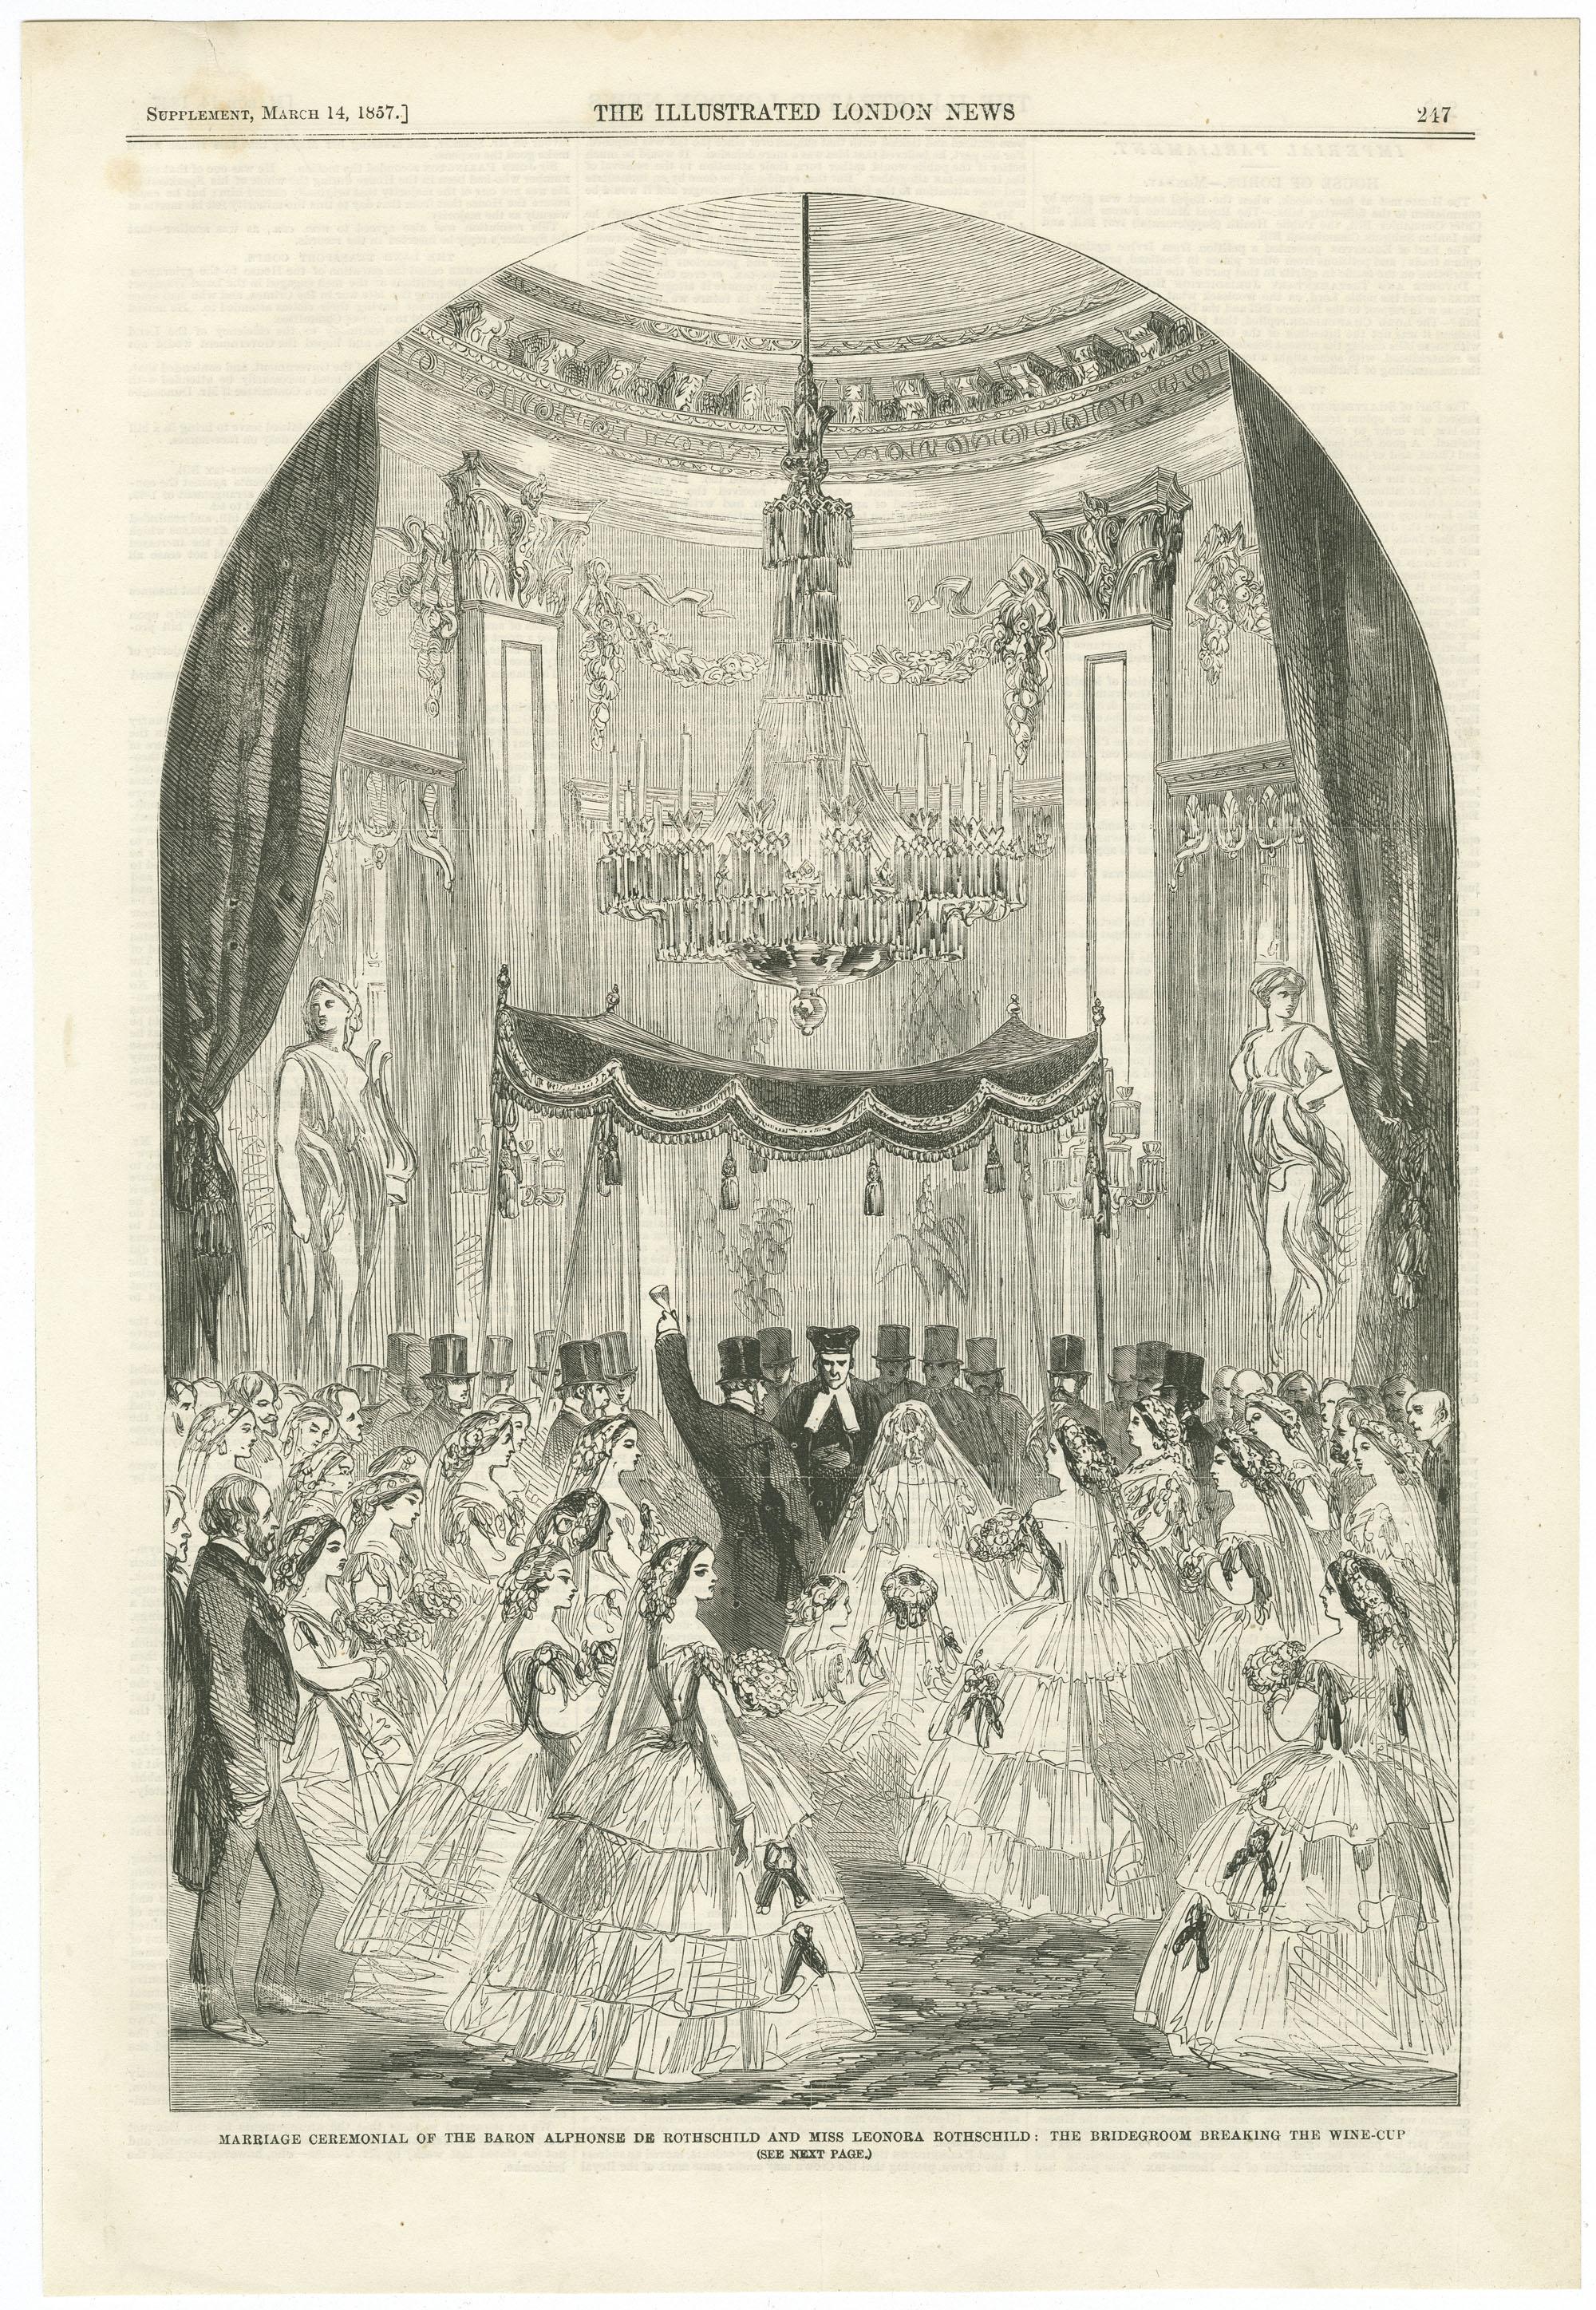 Marriage ceremonial of the Baron Alphonse de Rothschild and Miss Leonora Rothschild: the bridegroom breaking the wine-cup